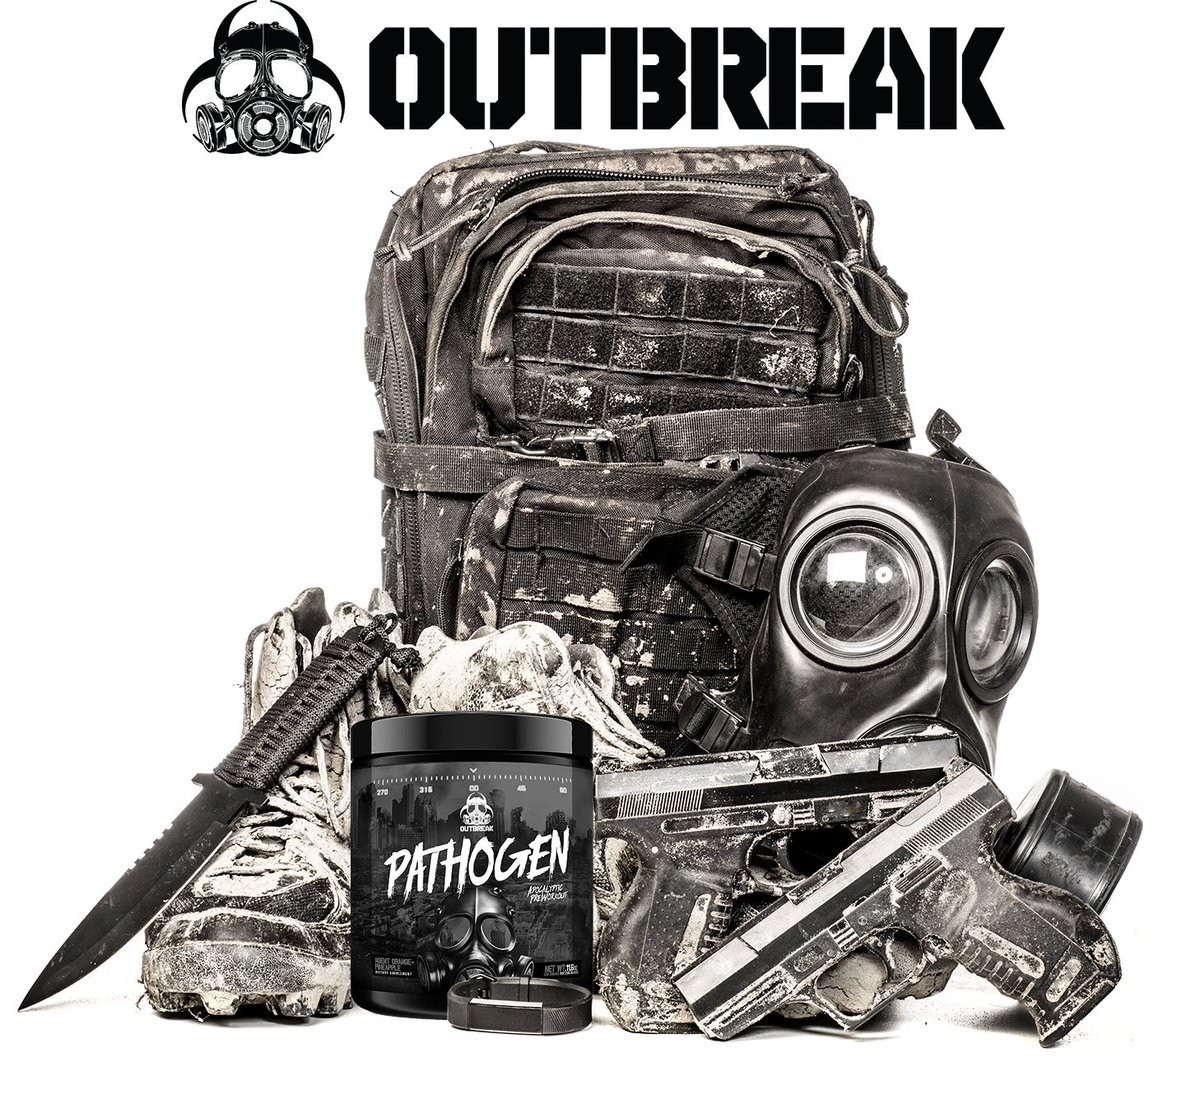 Outbreak Nutrition on Twitter: